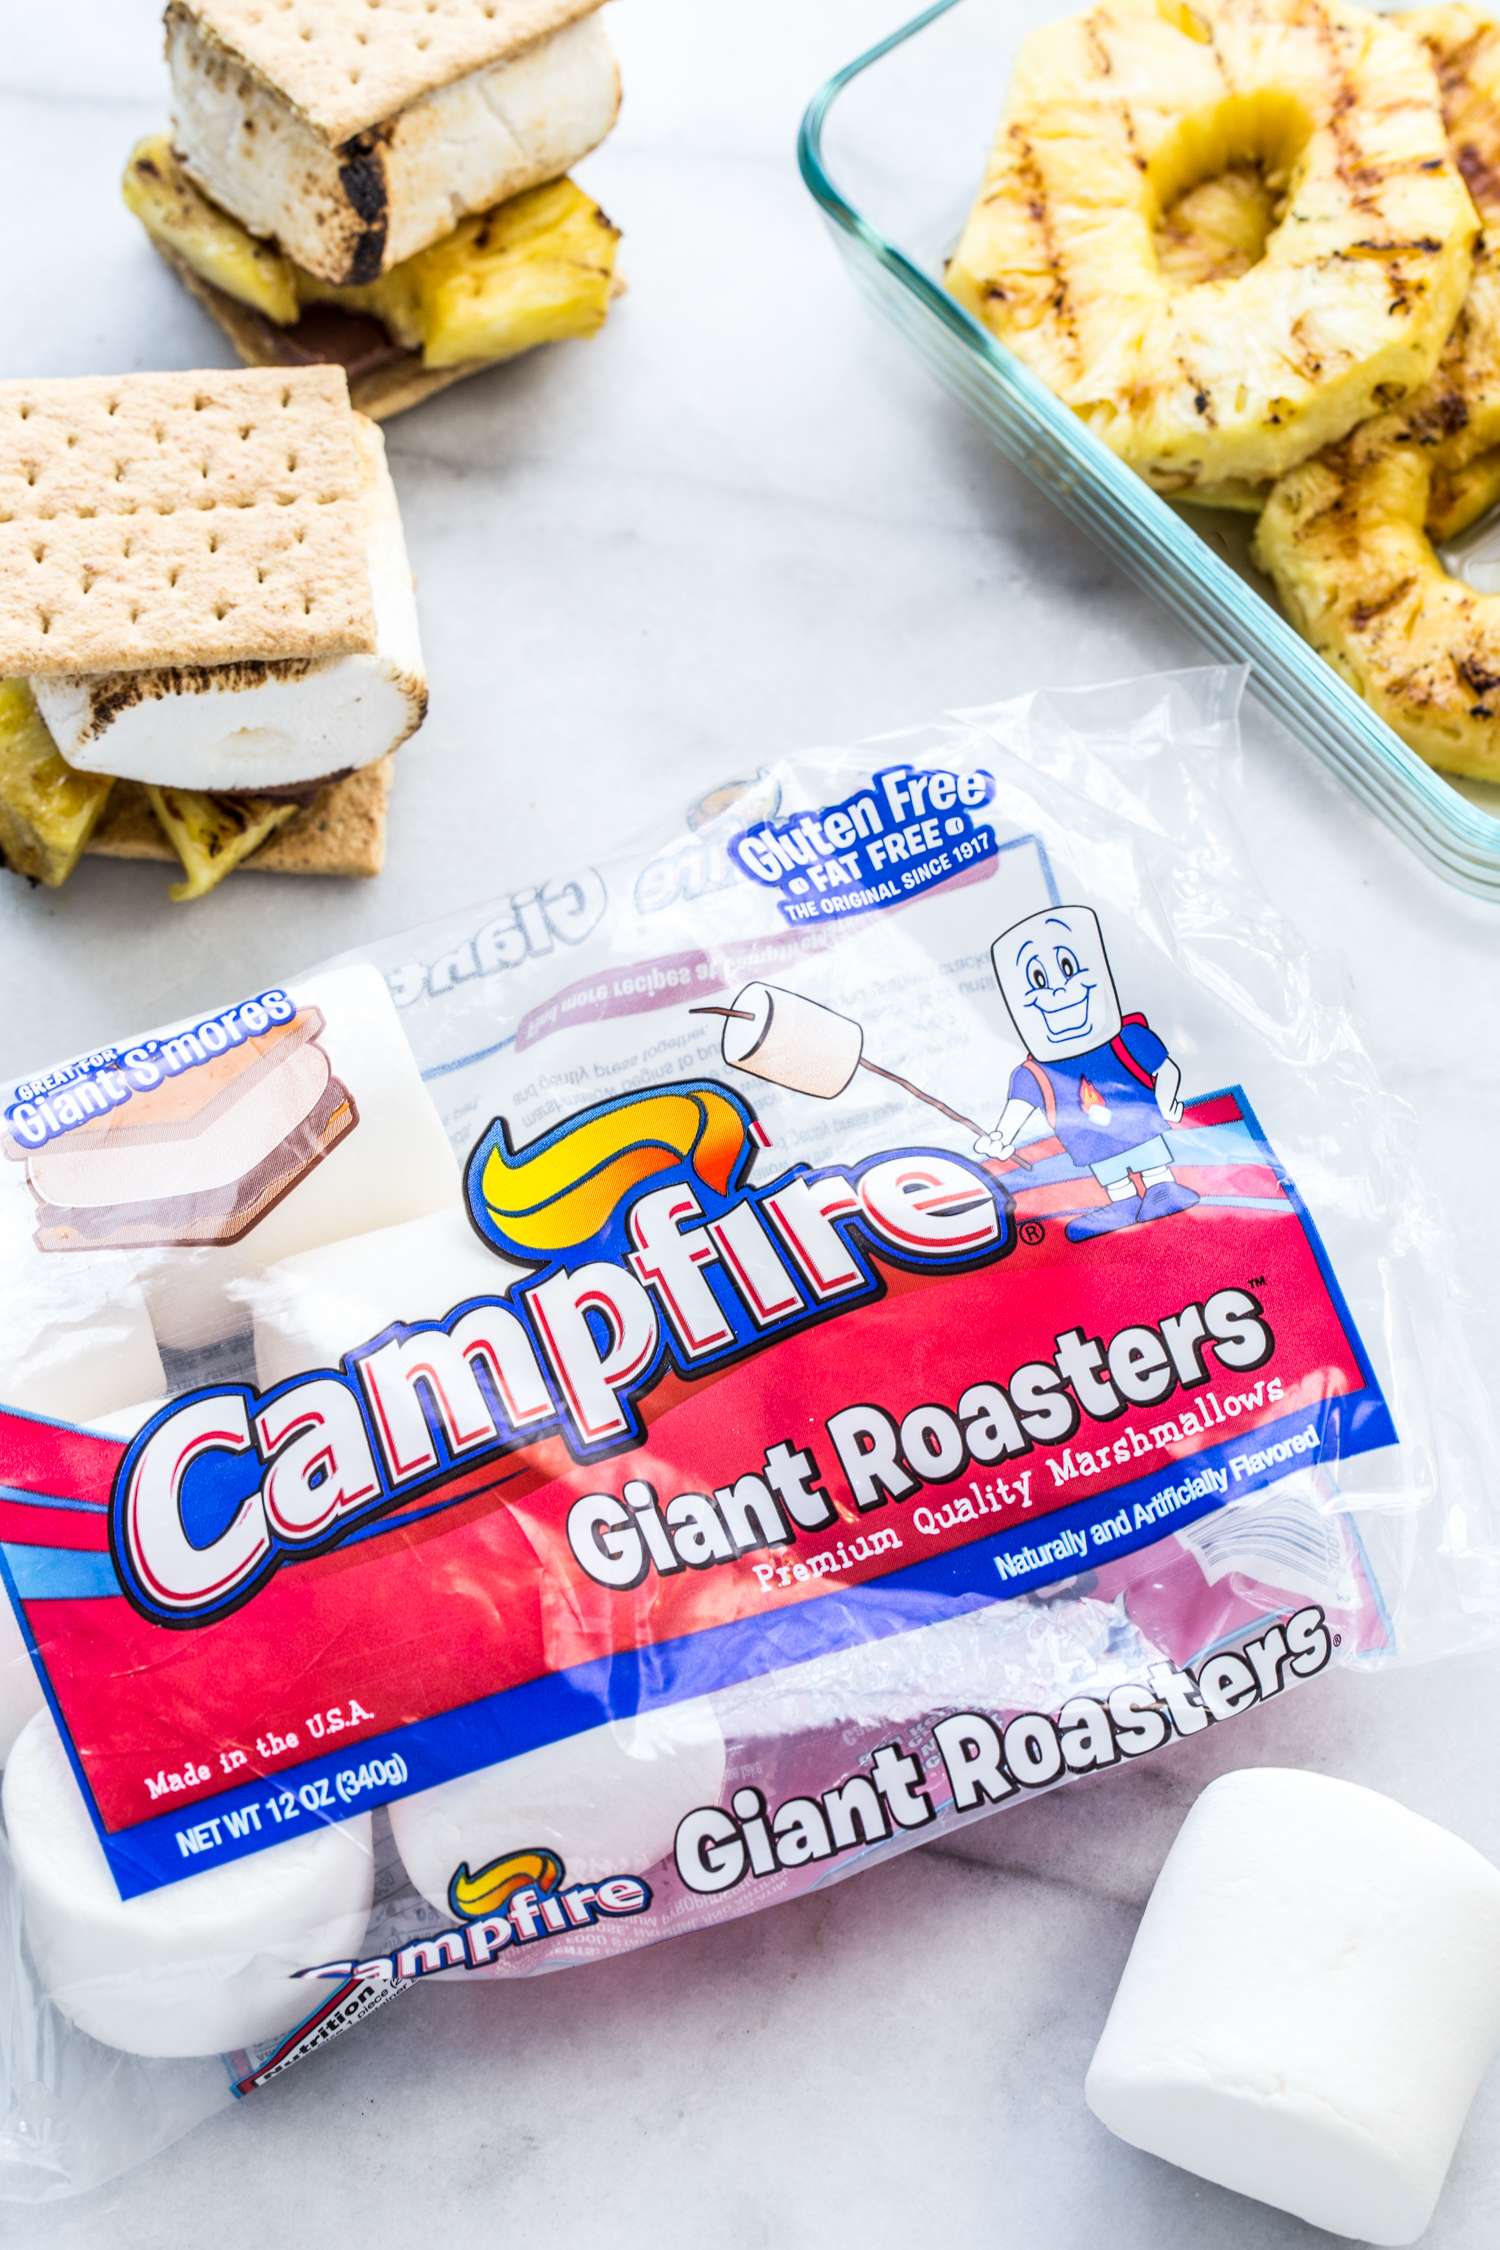 Grilled Pineapple S'mores with grilled pineapple, milk chocolate, and roasted Campfire® Giant Roaster Marshmallows + Recipe Video